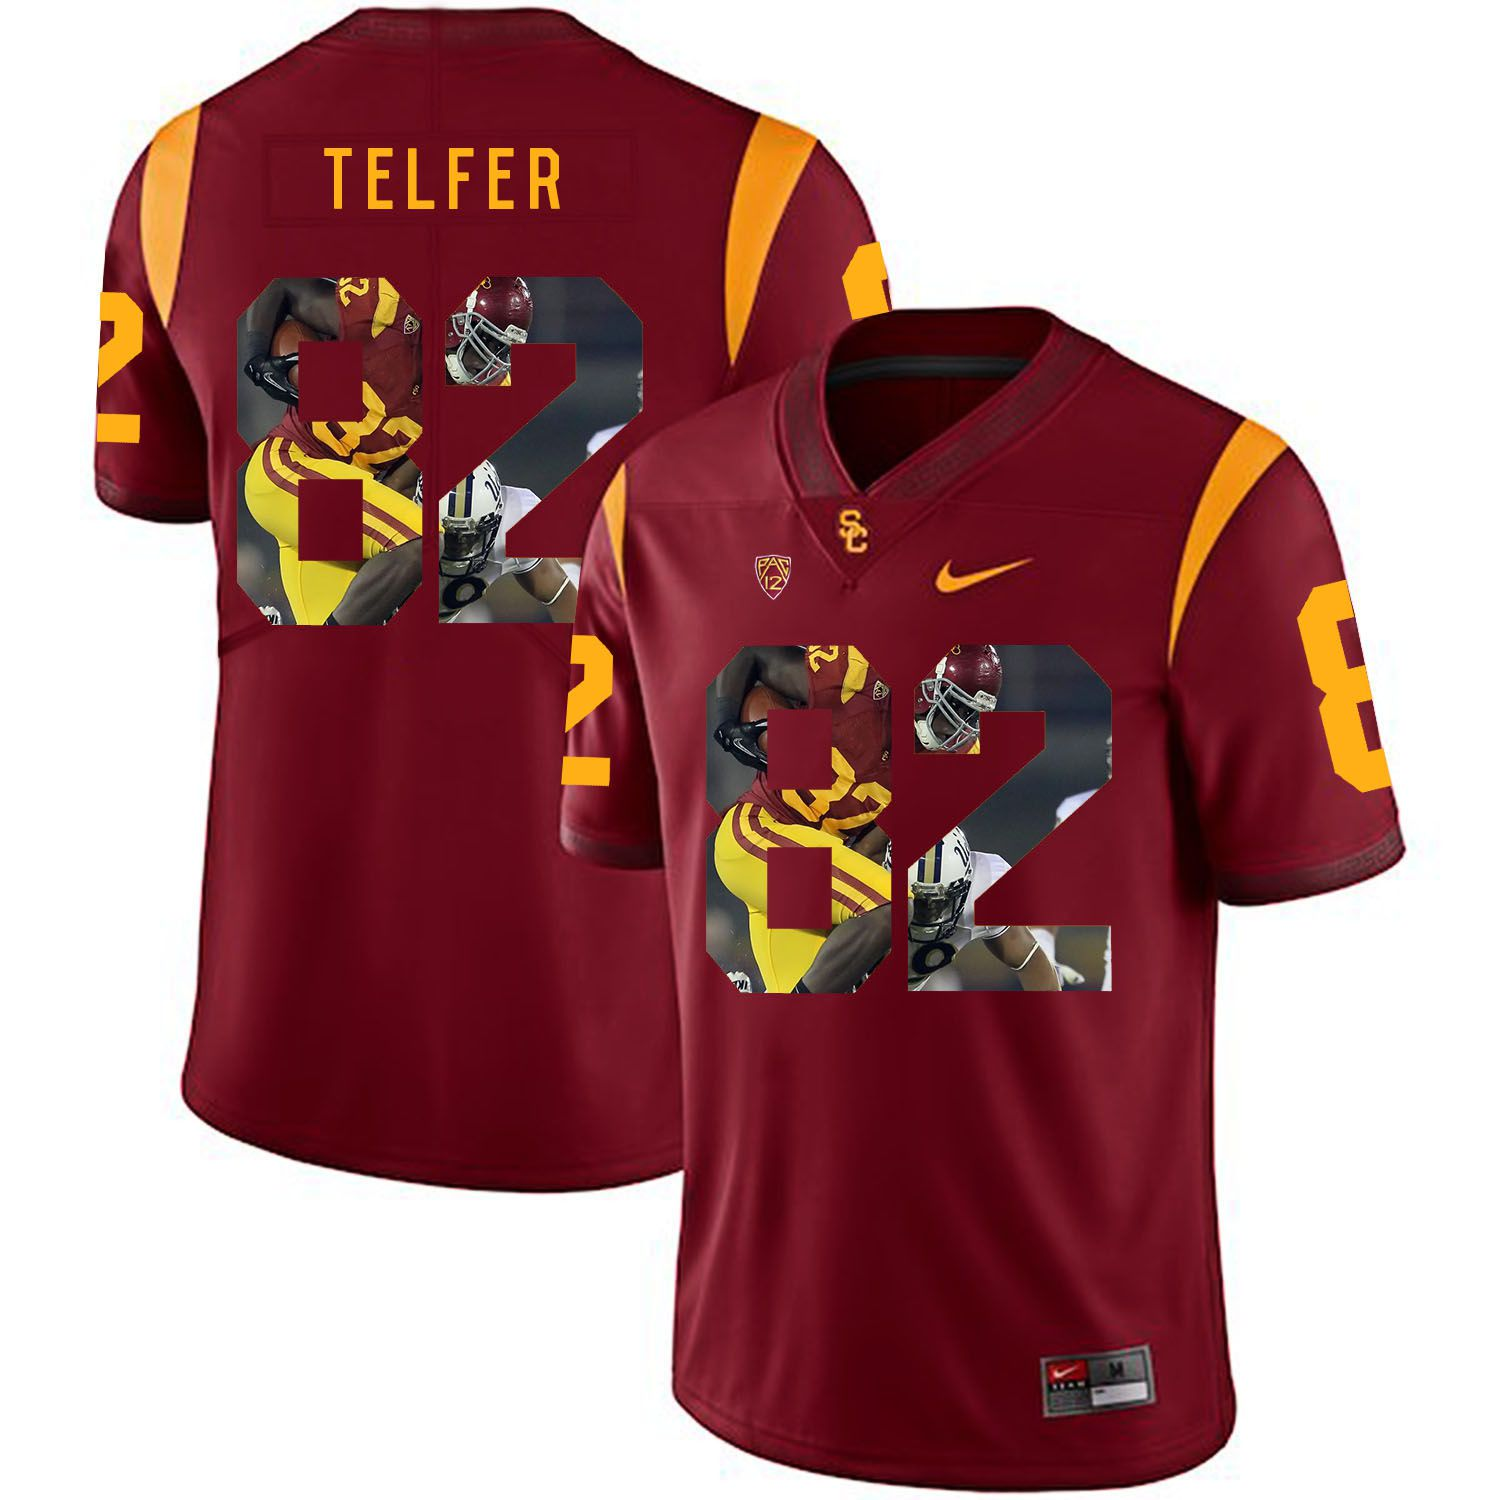 Men USC Trojans 82 Telfer Red Fashion Edition Customized NCAA Jerseys